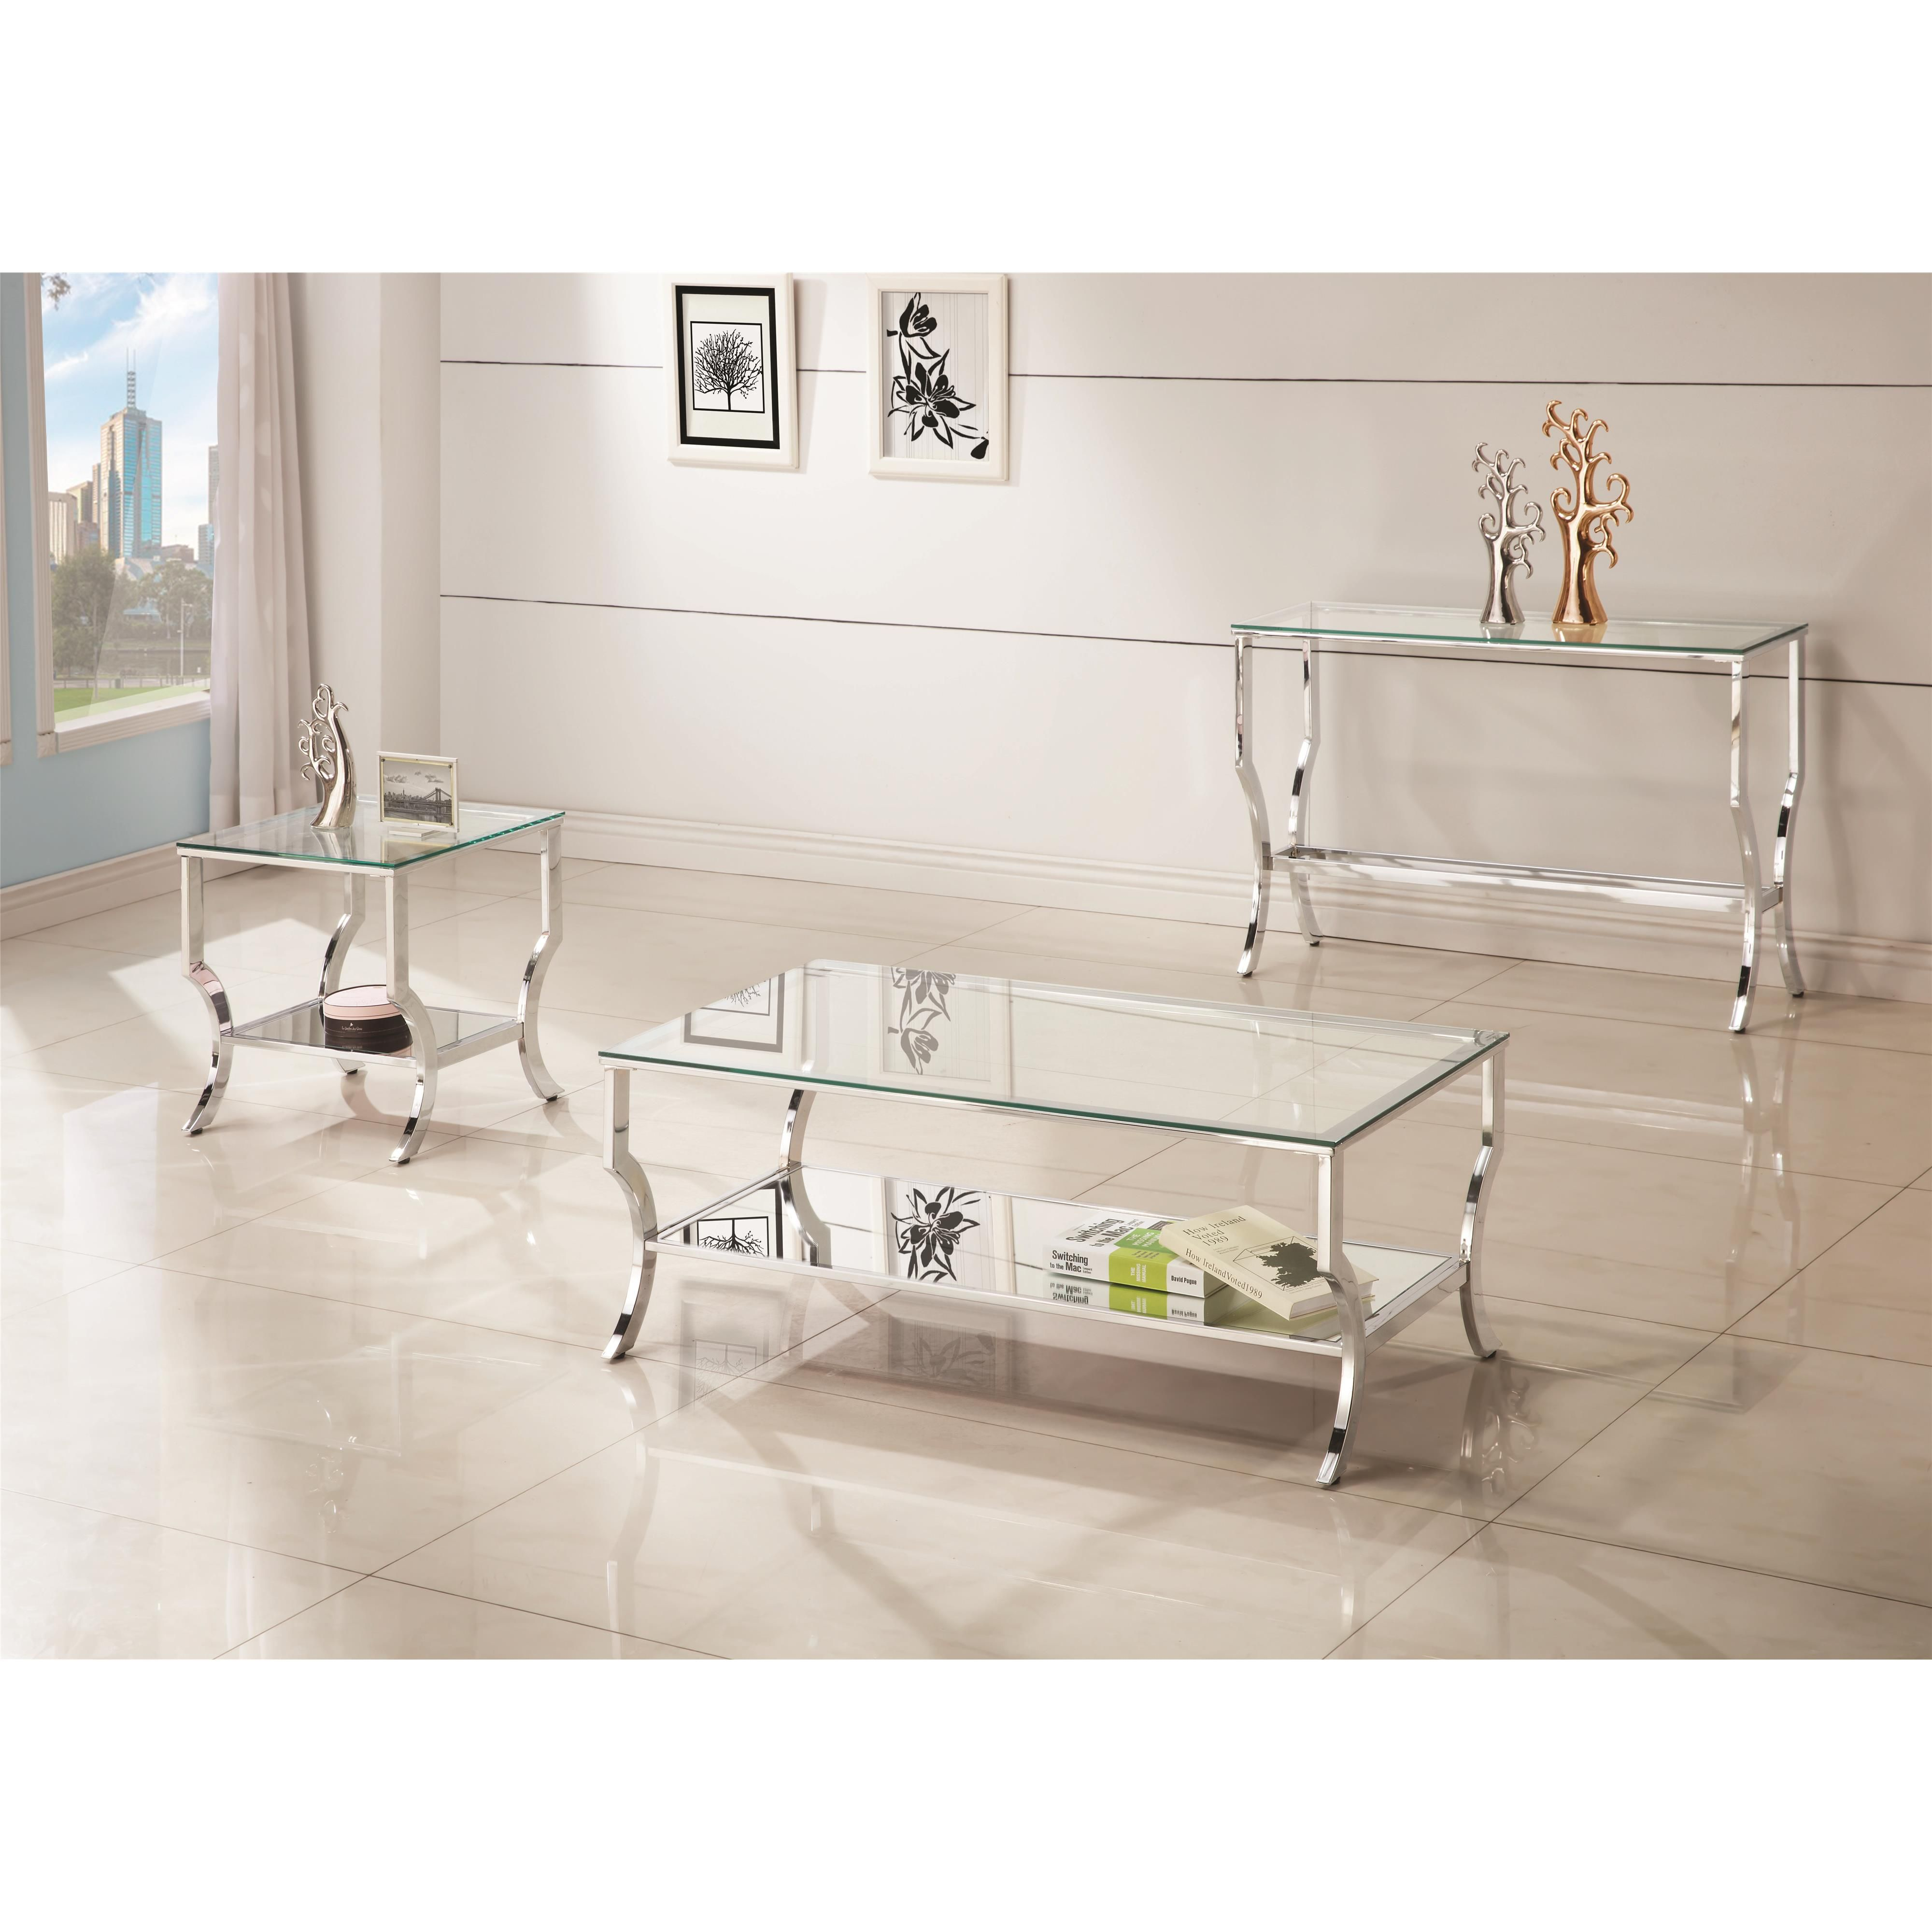 Groovy Coaster 72033 Metal Coffee Table With Glass Top And Mirrored Dailytribune Chair Design For Home Dailytribuneorg